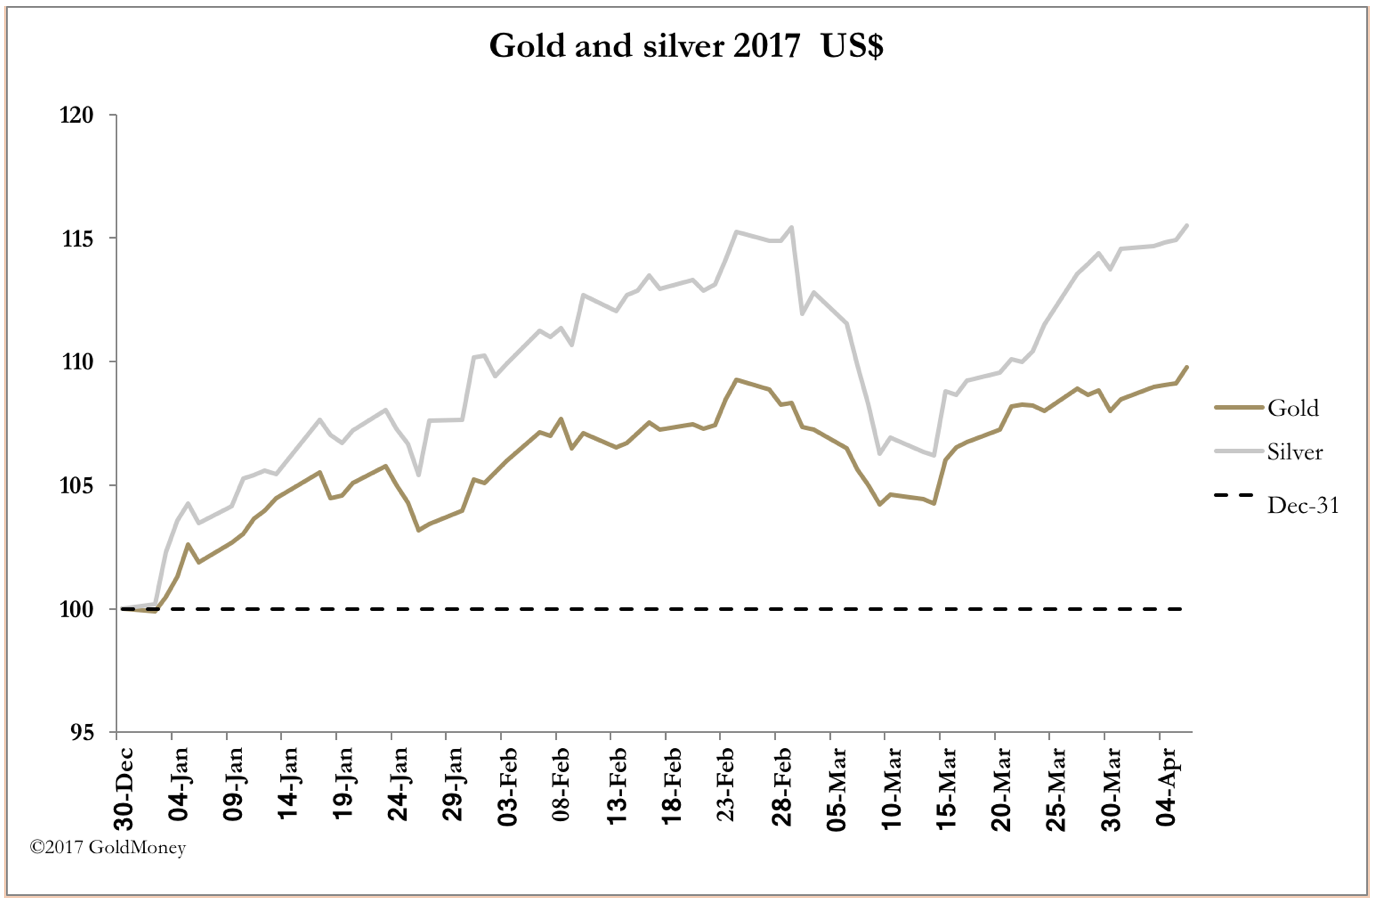 Gold vs. Silver USD Apr 4 2017